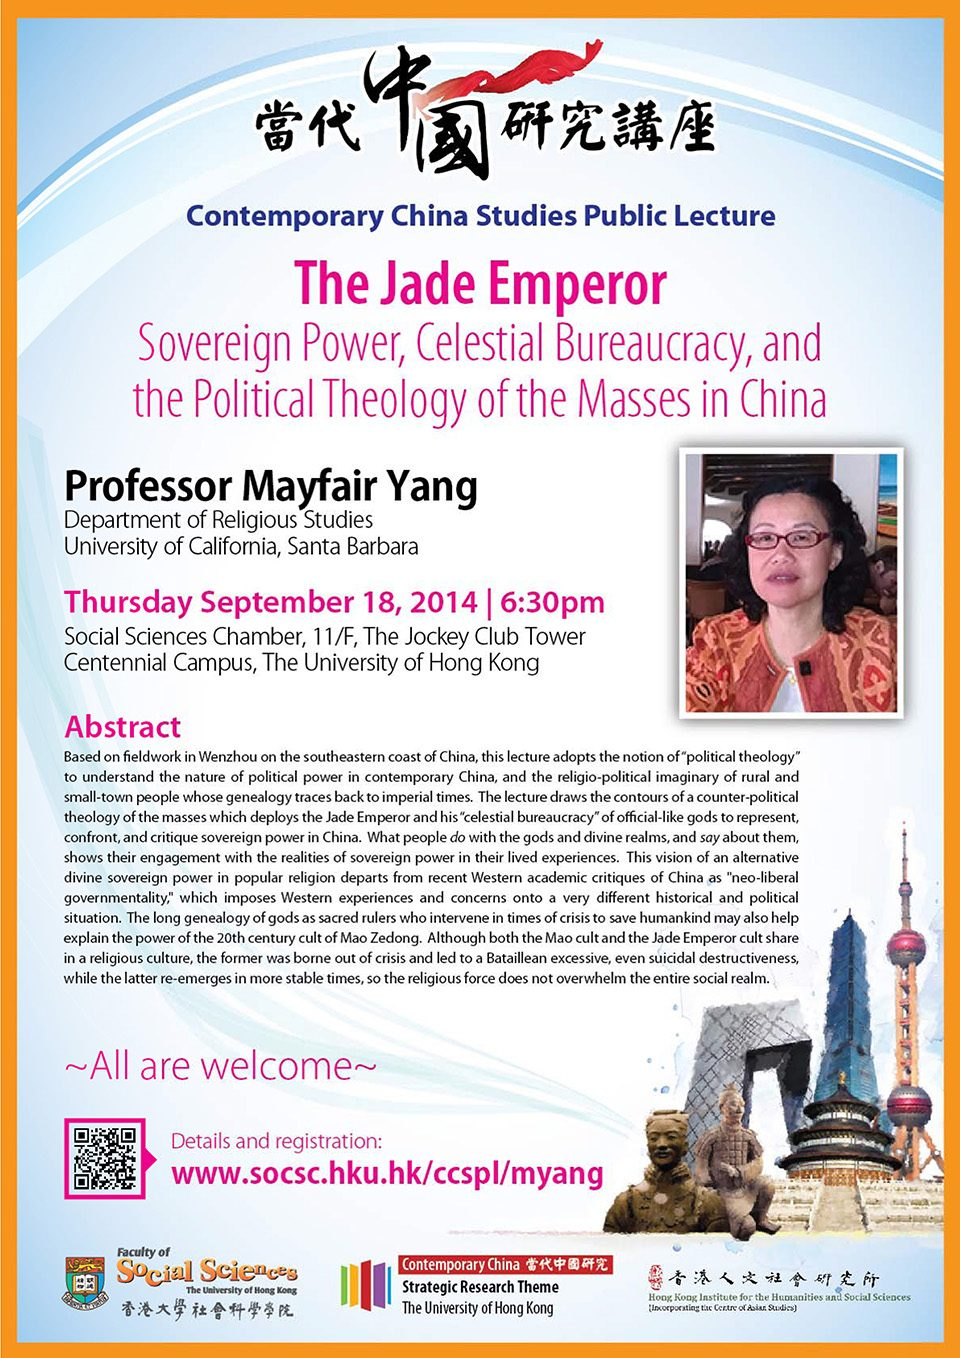 "Contemporary China Studies Public Lecture: ""The Jade Emperor: Sovereign Power, Celestial Bureaucracy, and the Political Theology of the Masses in China"" by Professor Mayfair Yang (September 18, 2014)"